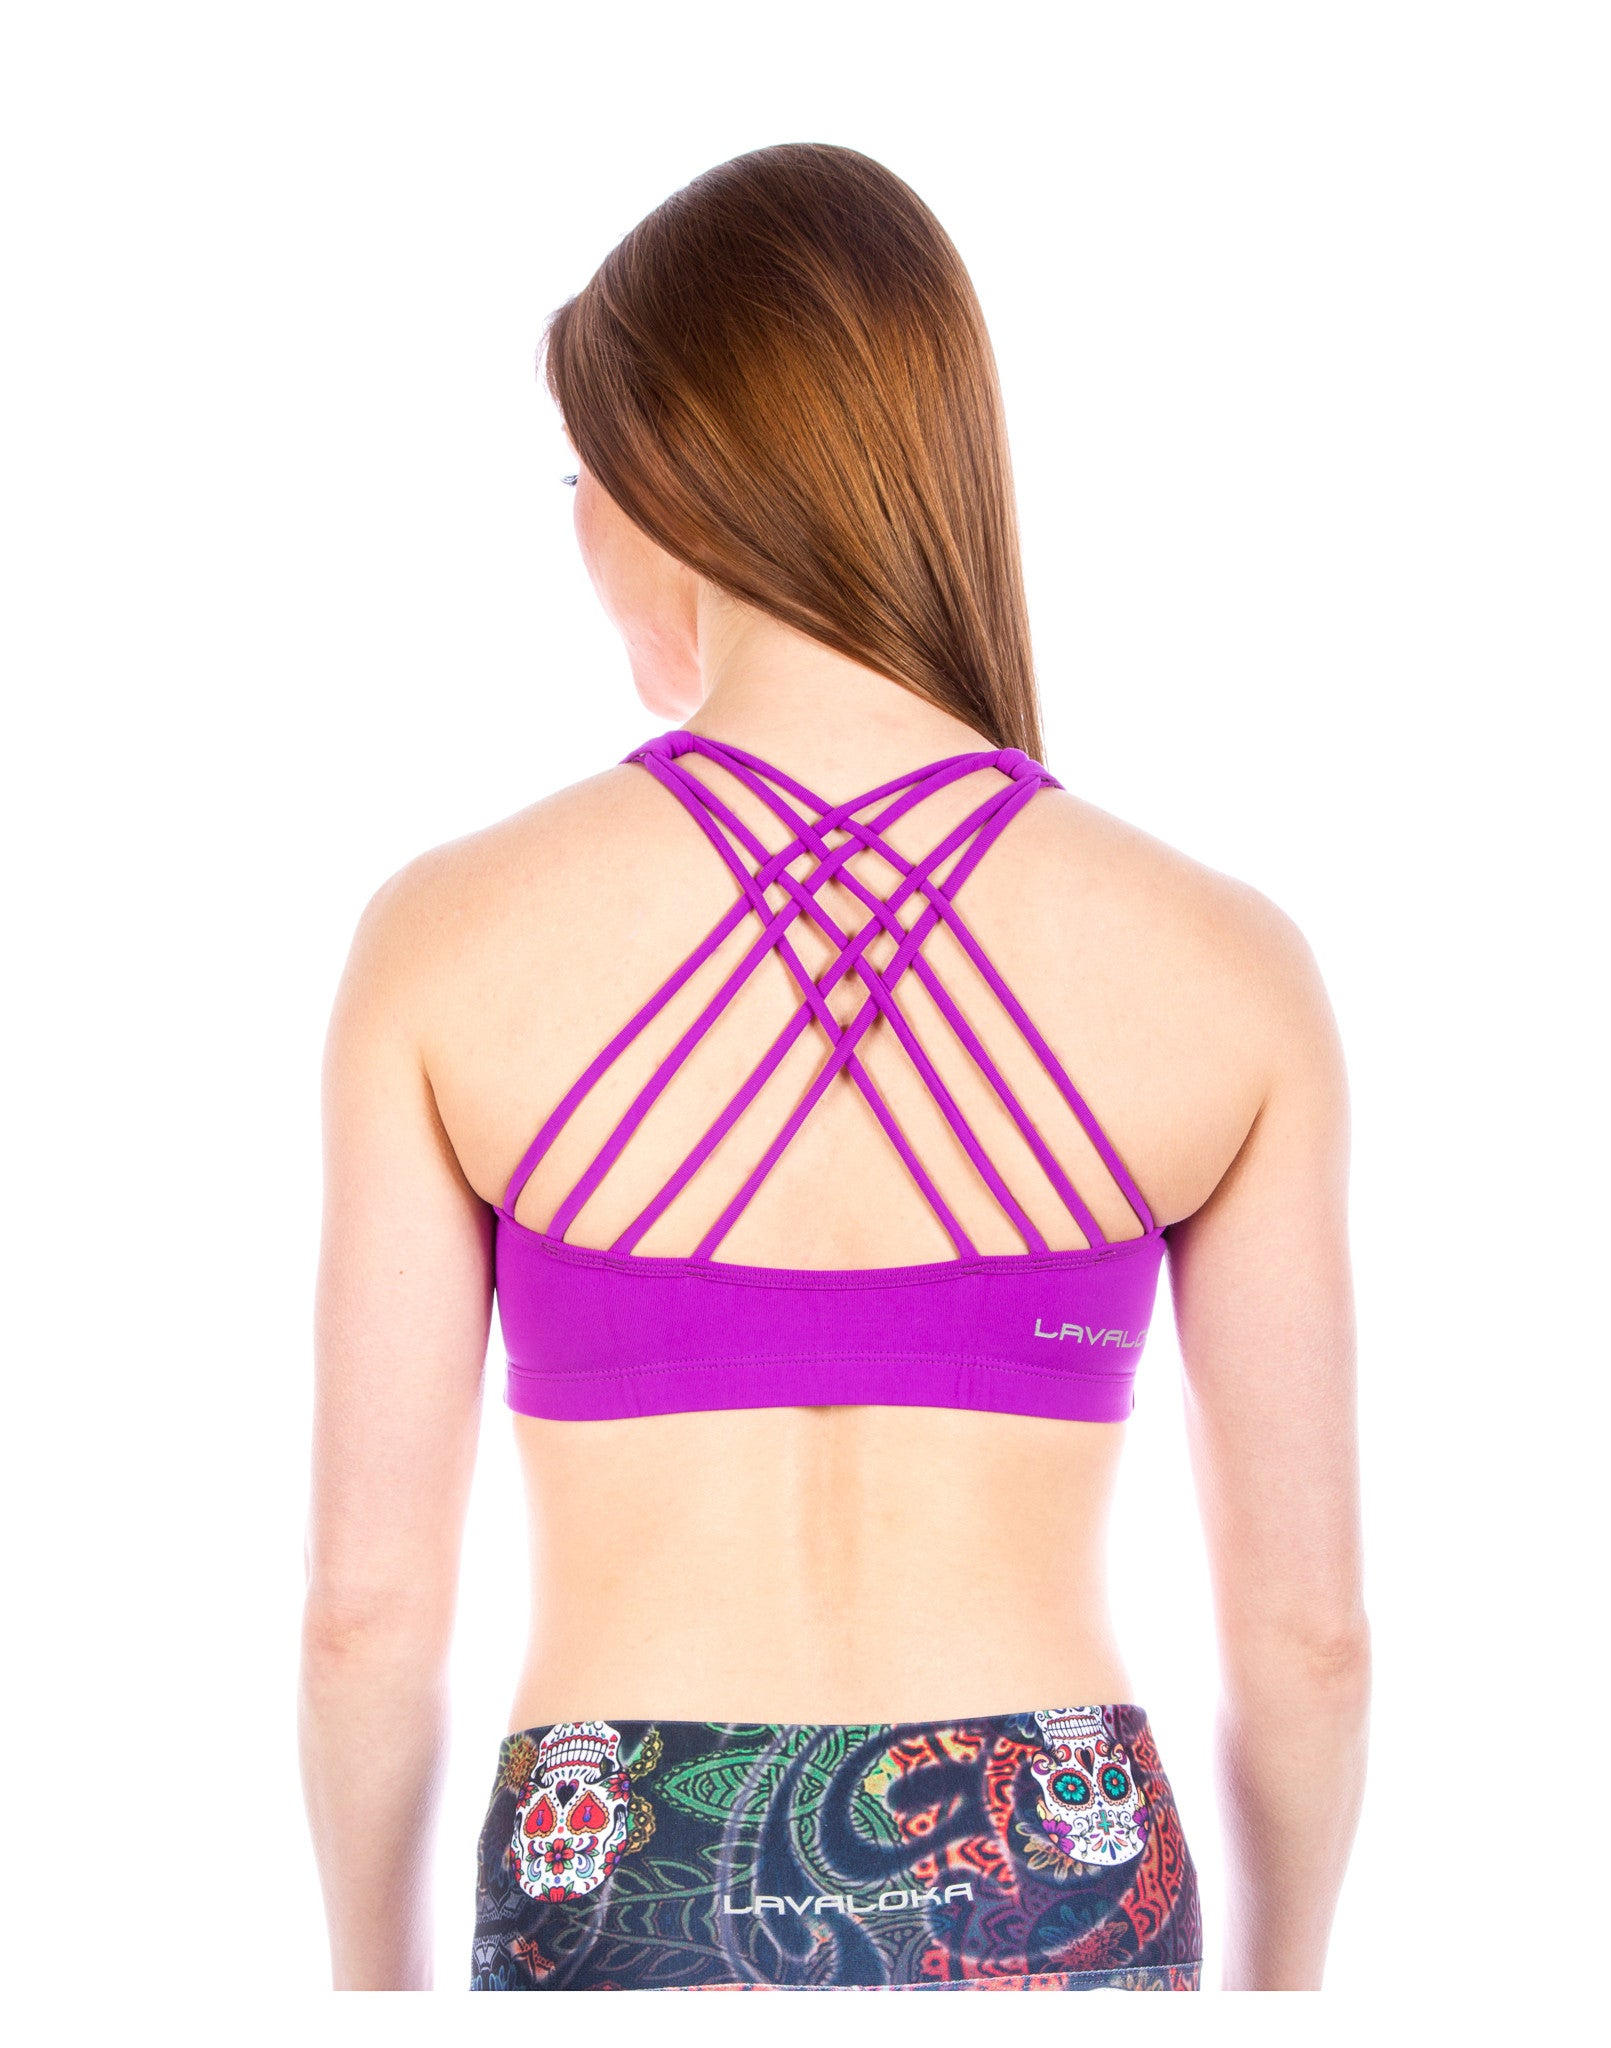 Sports Bra - Samantha Sports Bra LavaLoka - Purple - buy it in every color